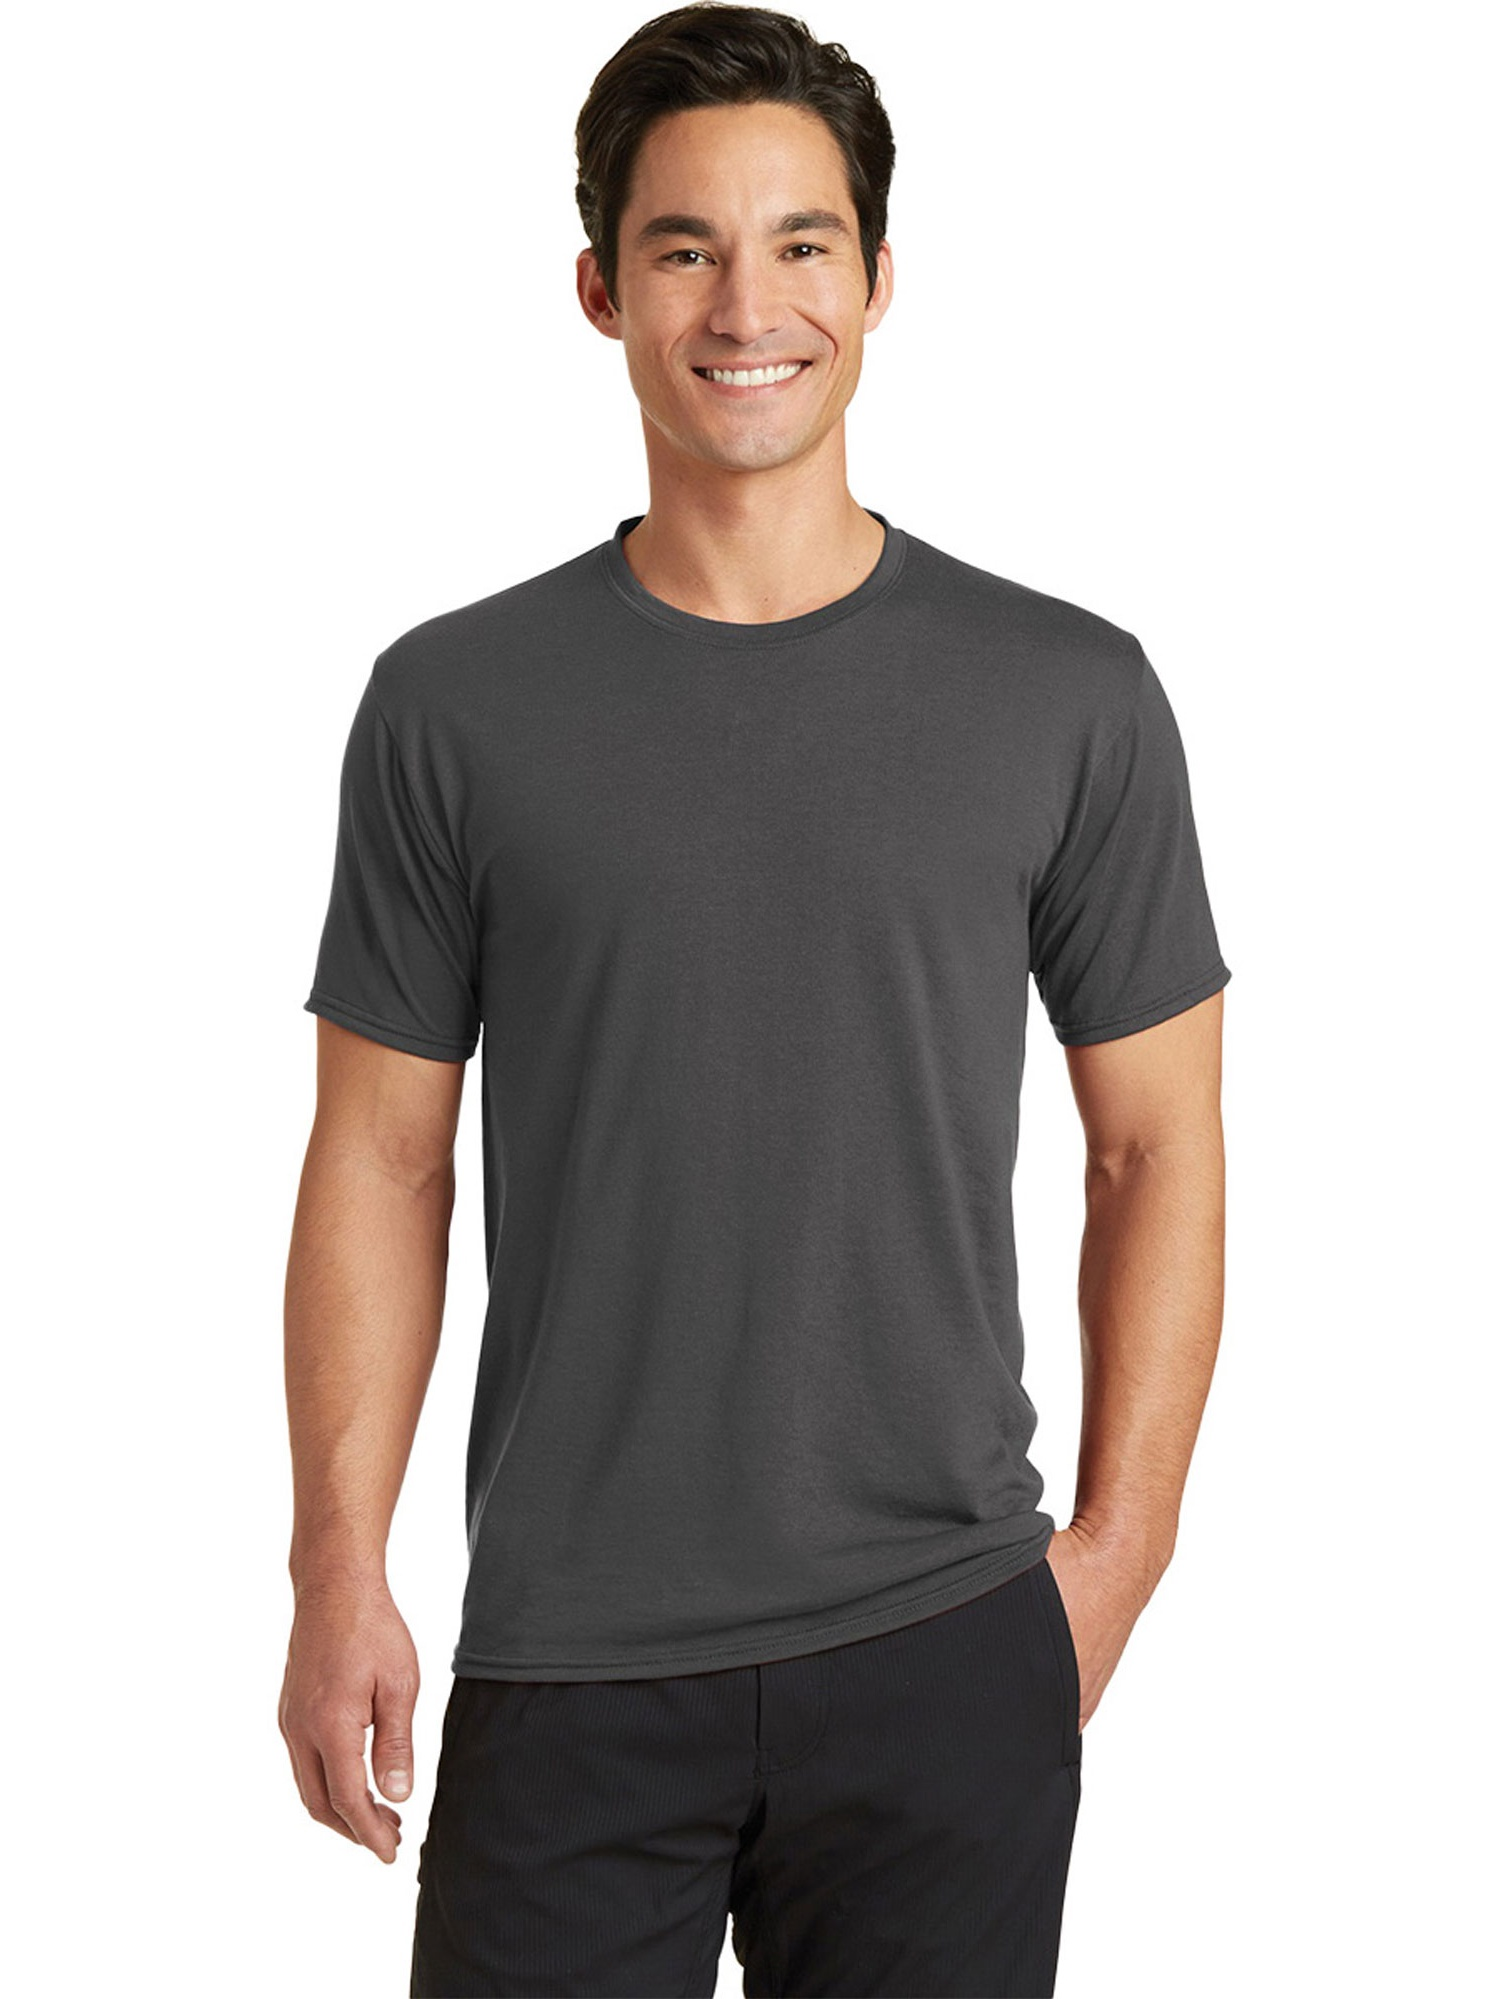 Port & Company Men's Essential Blended Performance Tee